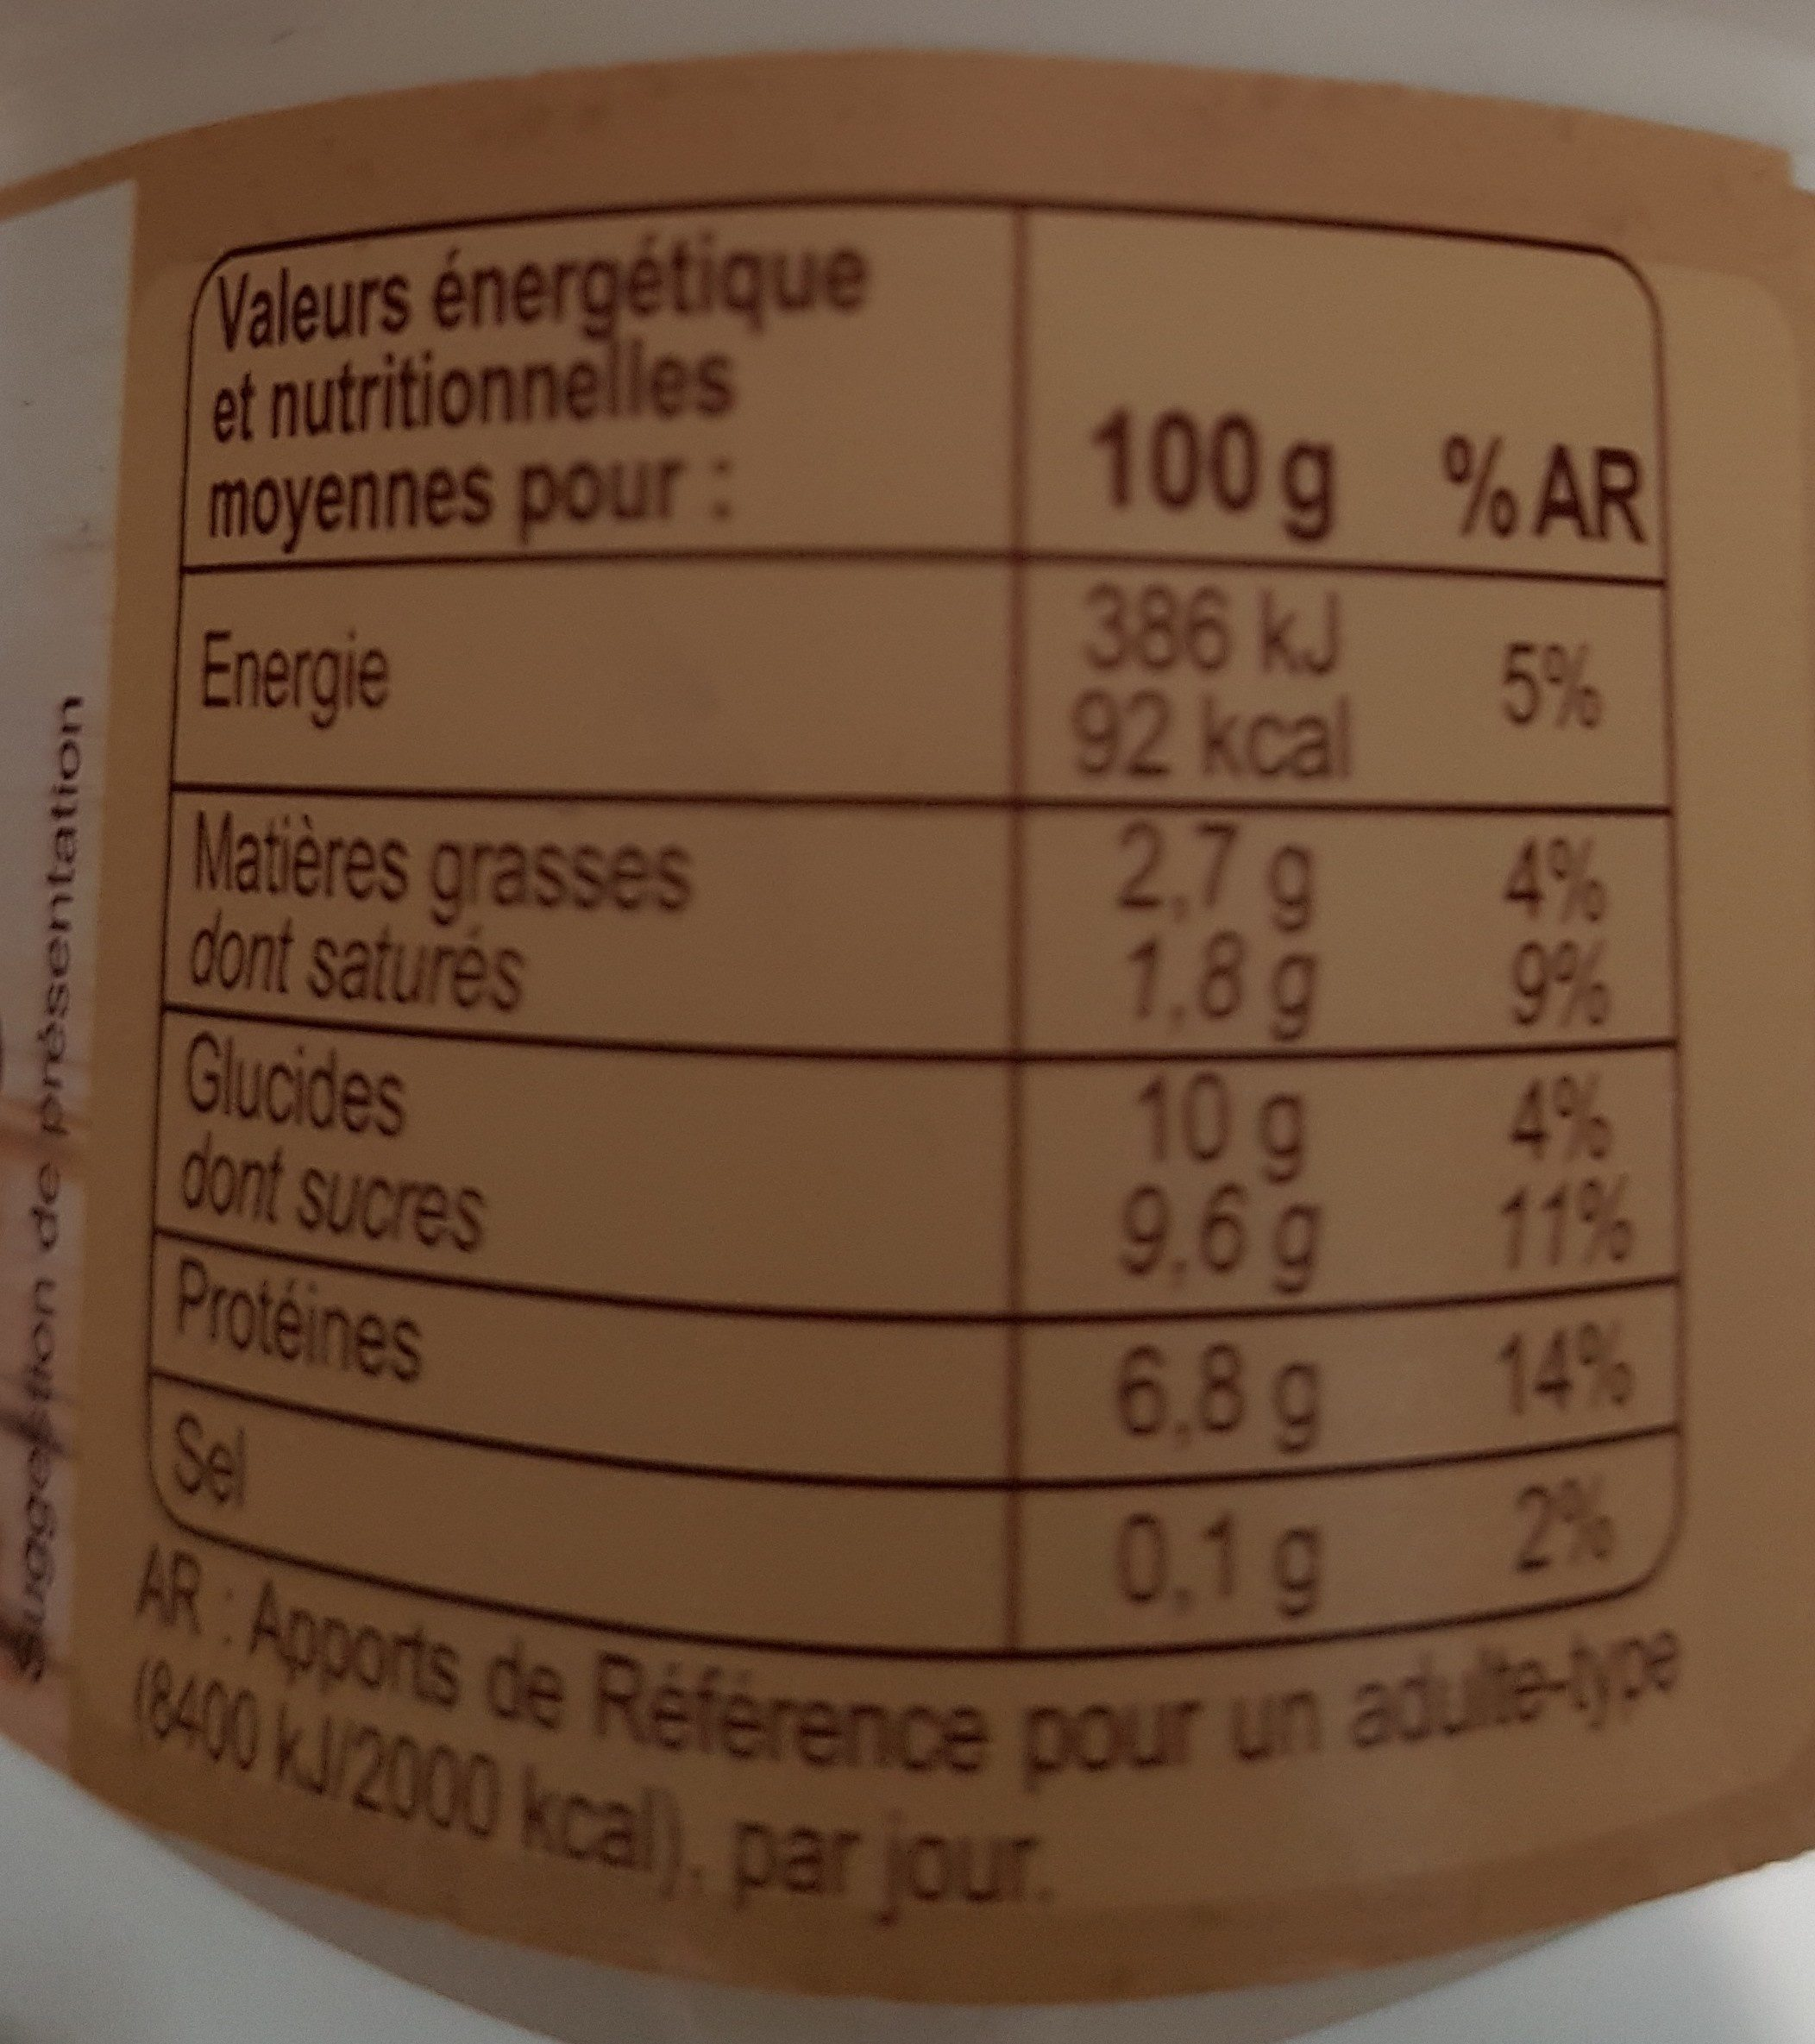 Fromage blanc a la vanille - Nutrition facts - fr